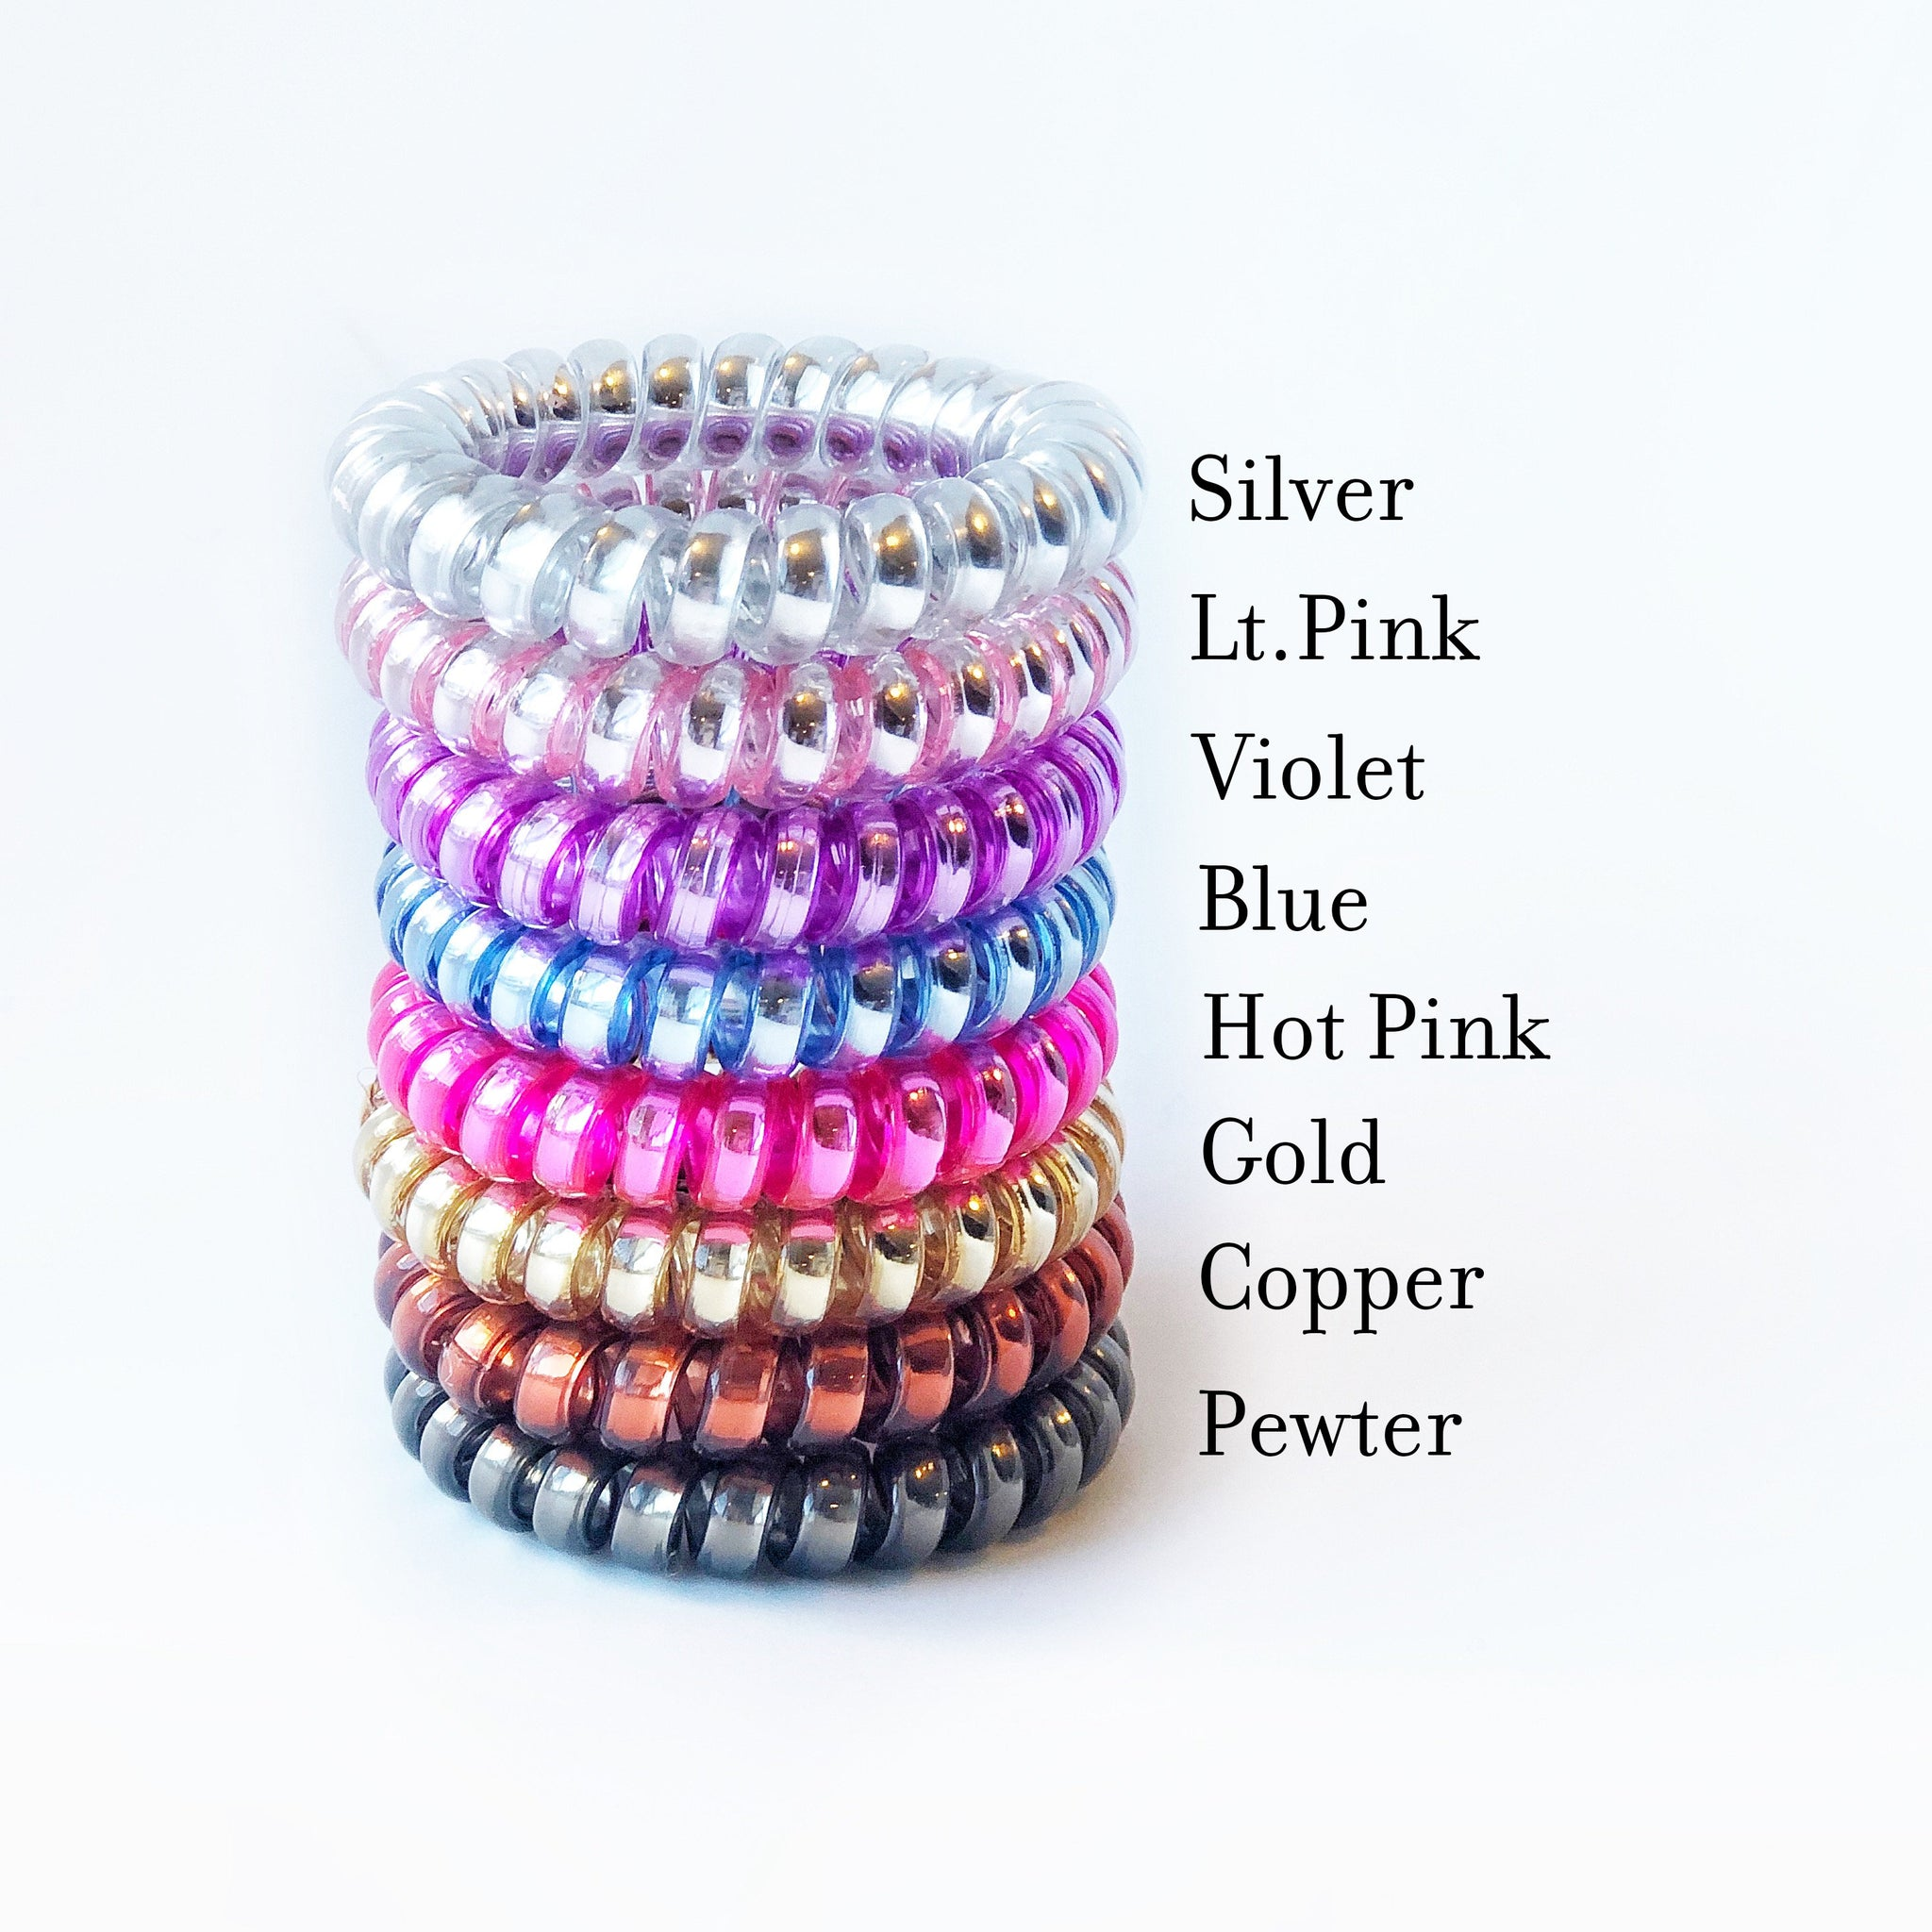 5th Birthday Party Favors, Spiral Hair Ties - @PlumPolkaDot